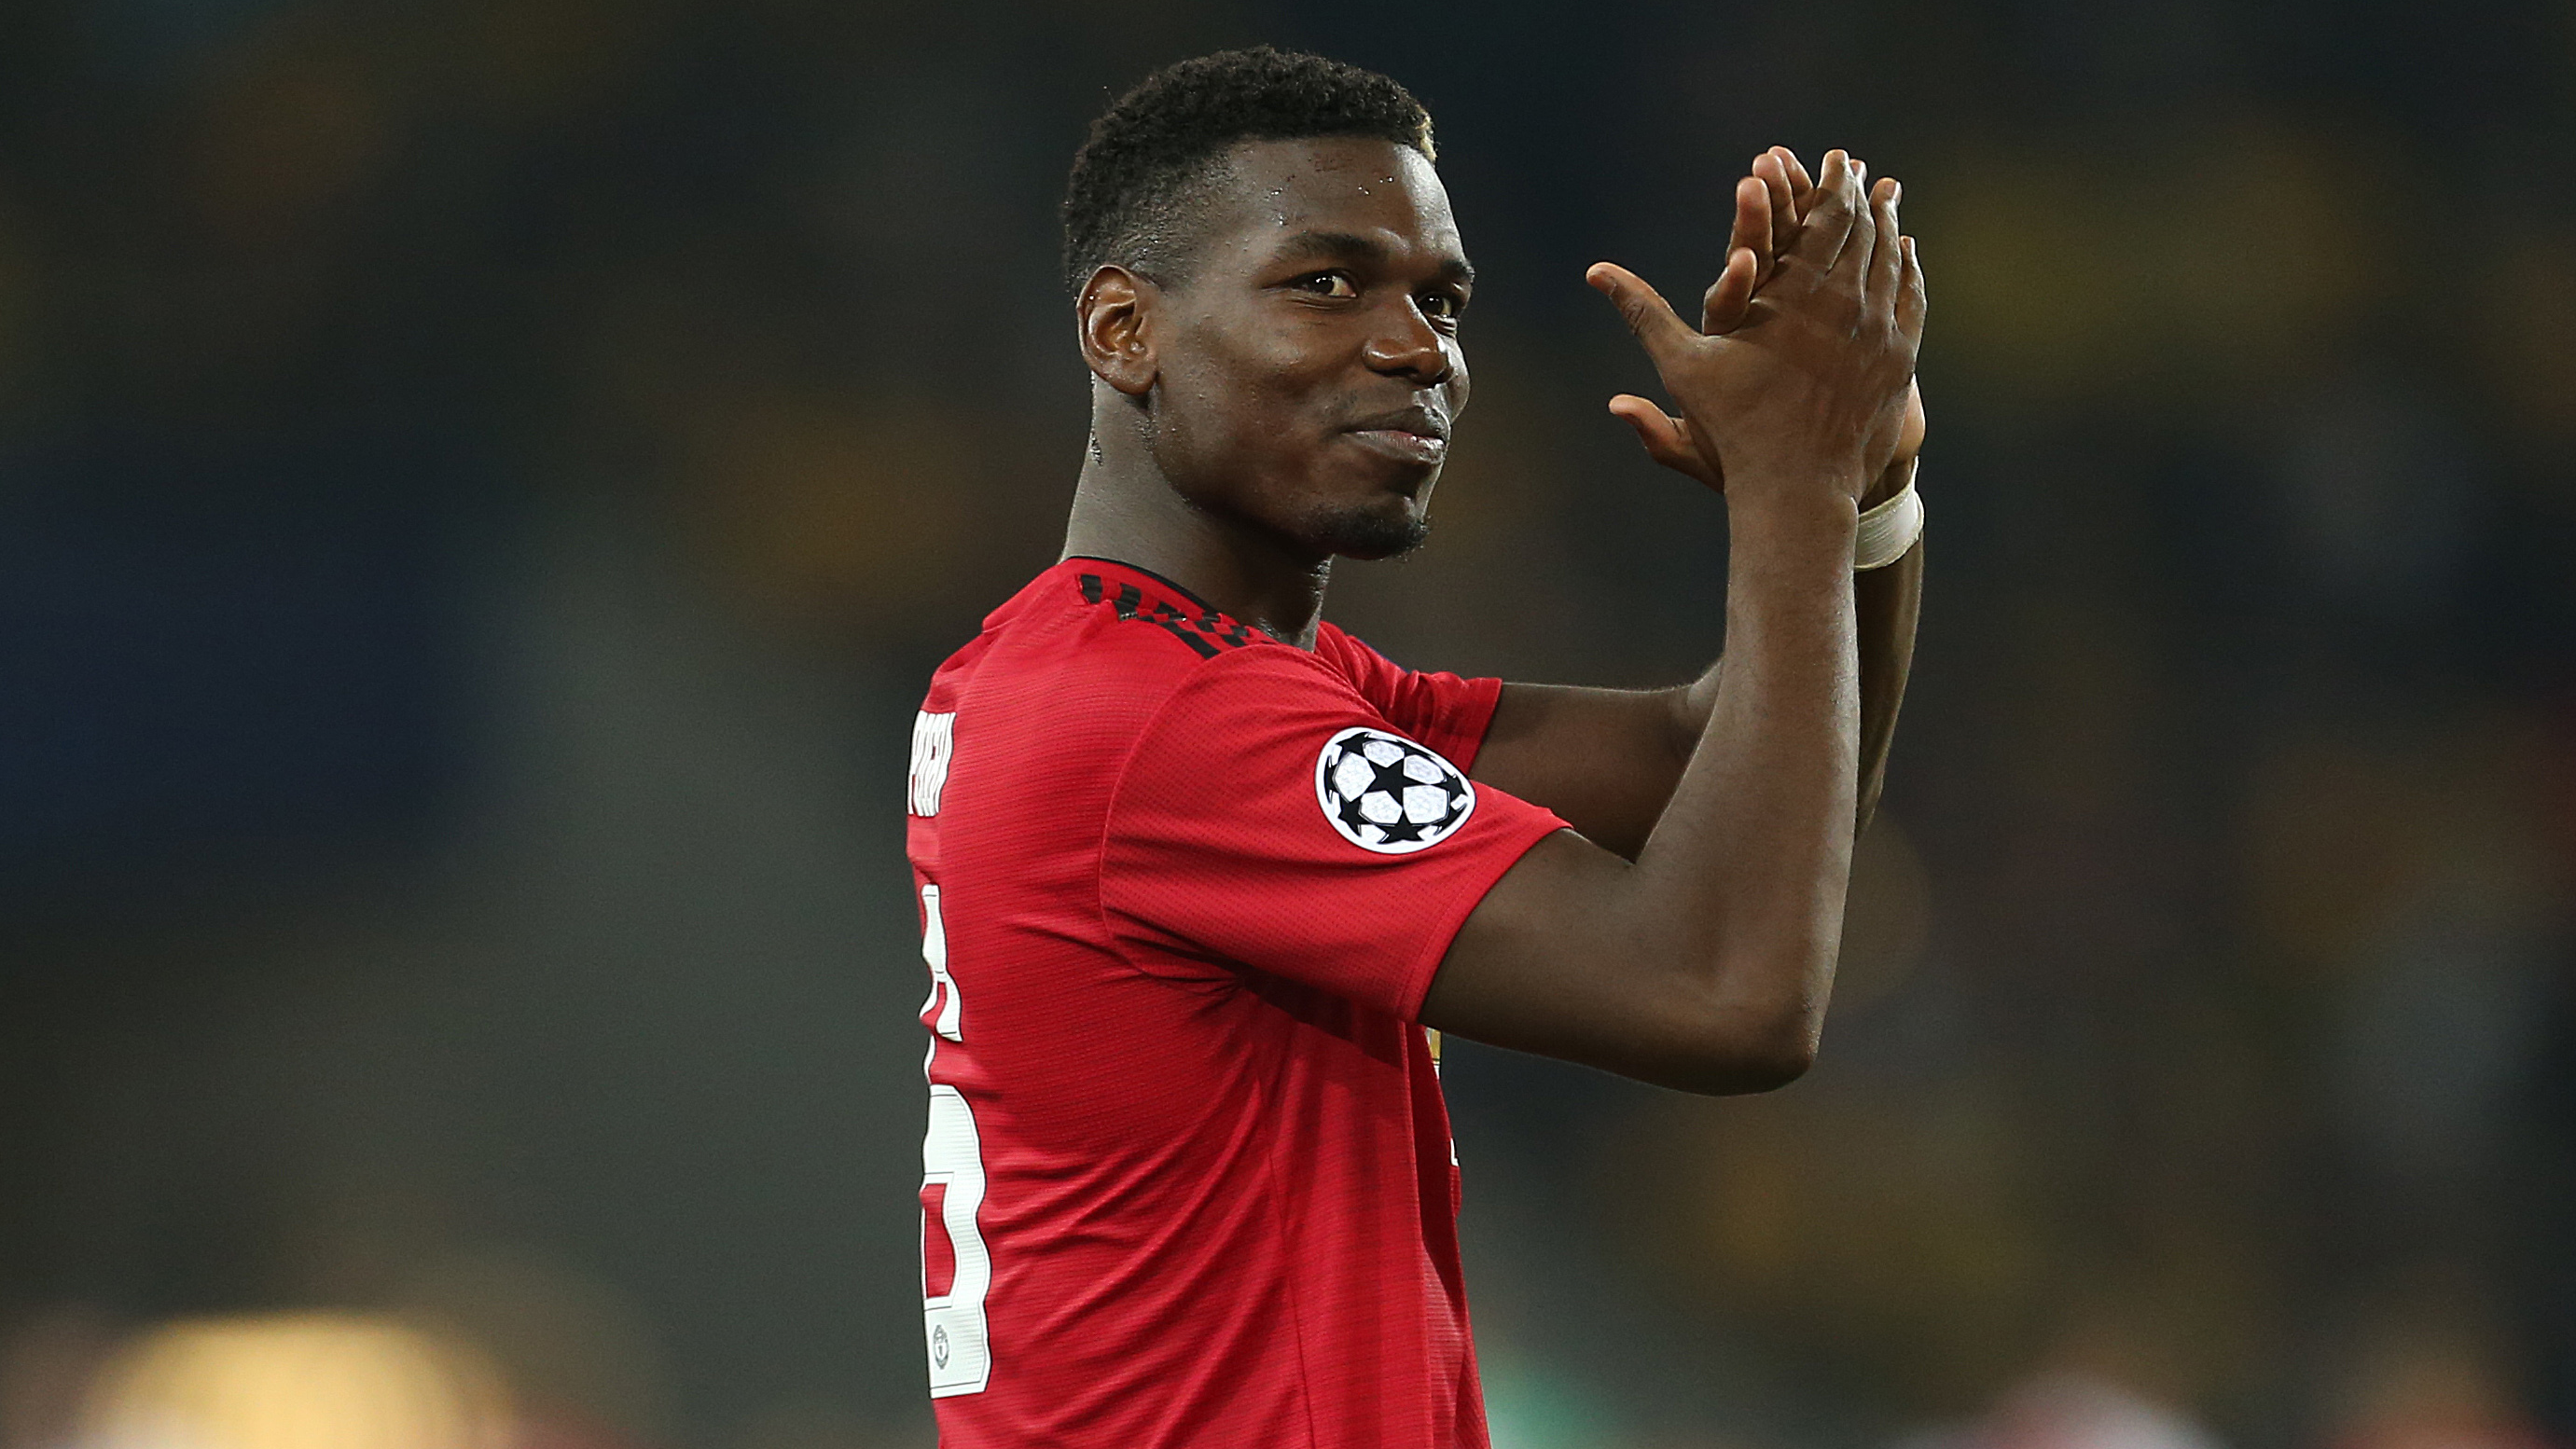 Could Pogba be the final piece of the Real puzzle? Image: PA Images